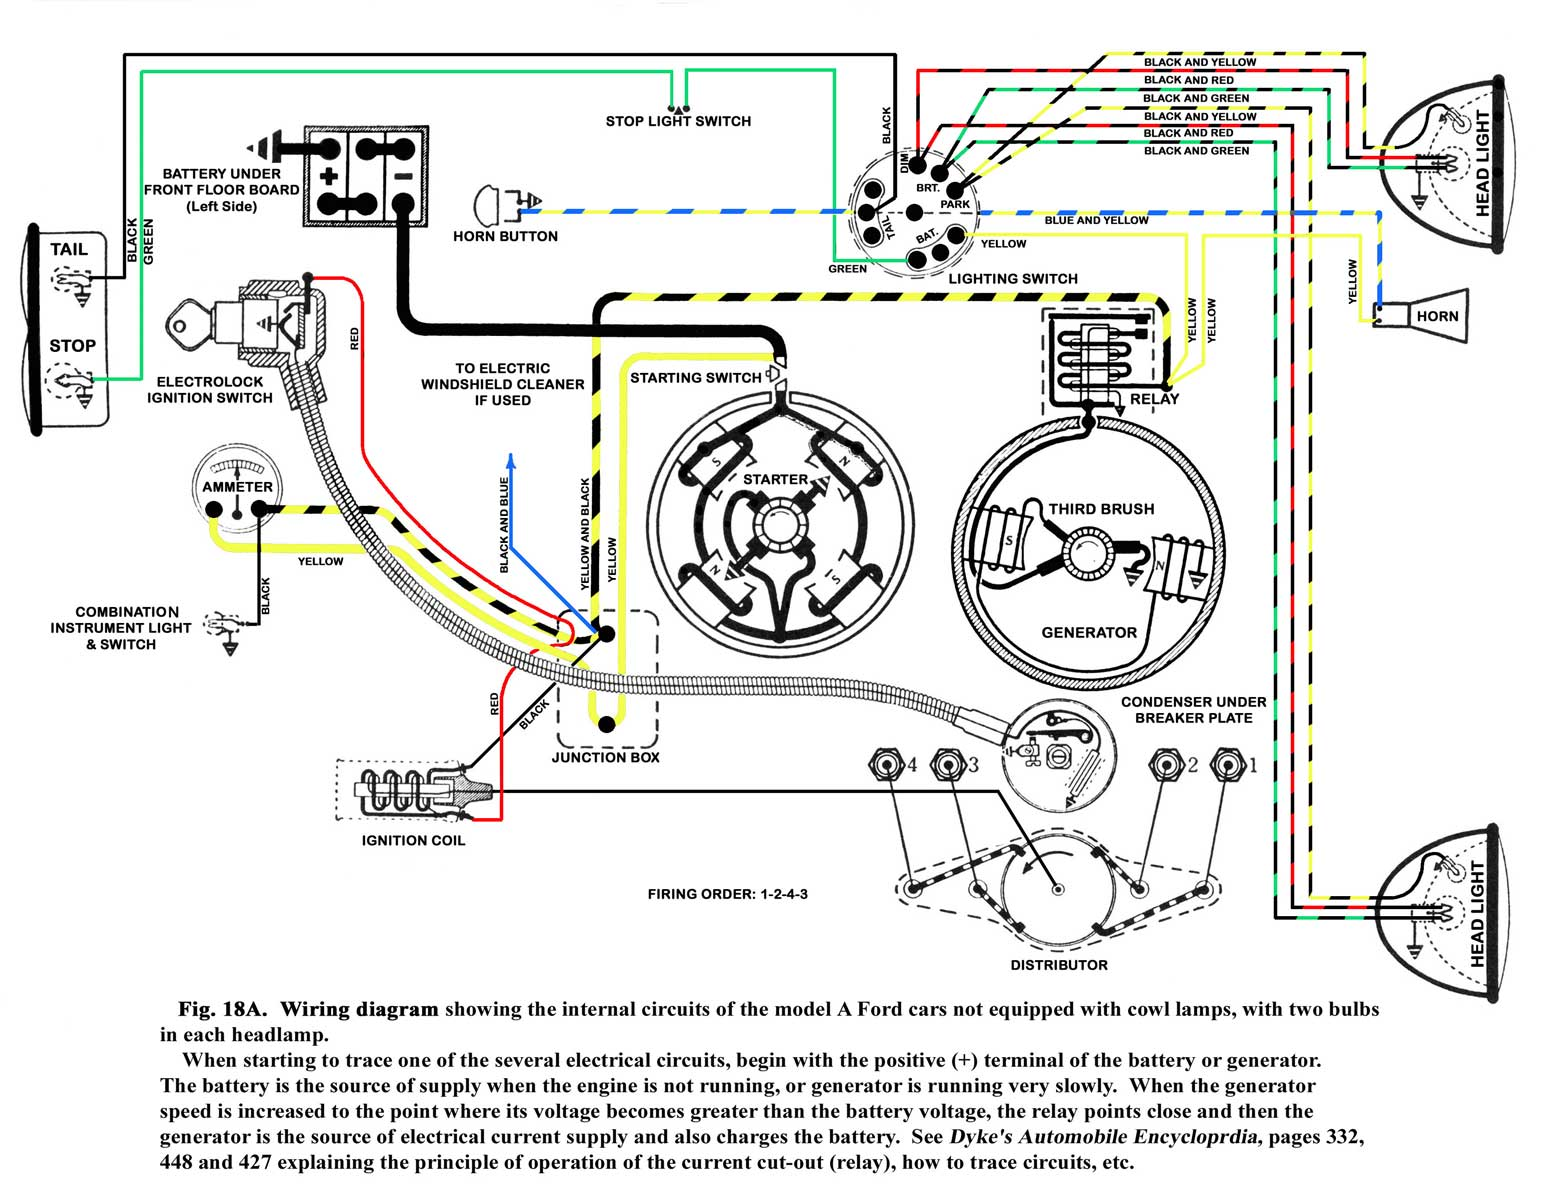 Early Ford Alternator Wiring Diagram Pt Cruiser Sds Simple Diagramsds Smart Car Diagrams Model A